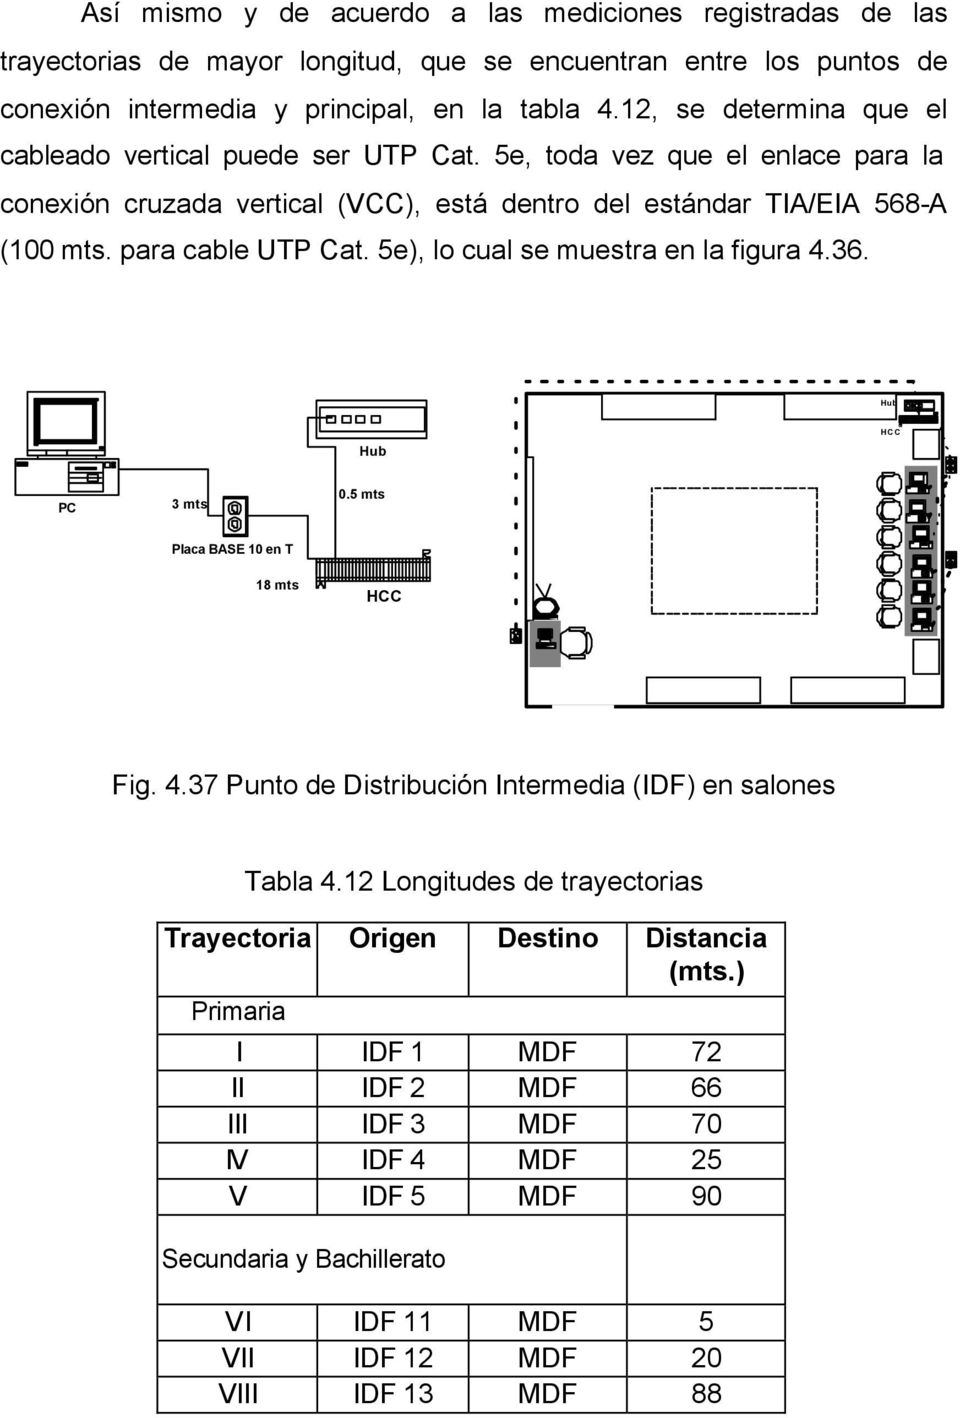 para cable UTP Cat. 5e), lo cual se muestra en la figura 4.36. HCC PC 3 mts 0.5 mts Placa BASE 10 en T 18 mts HCC Fig. 4.37 Punto de Distribución Intermedia (IDF) en salones Tabla 4.